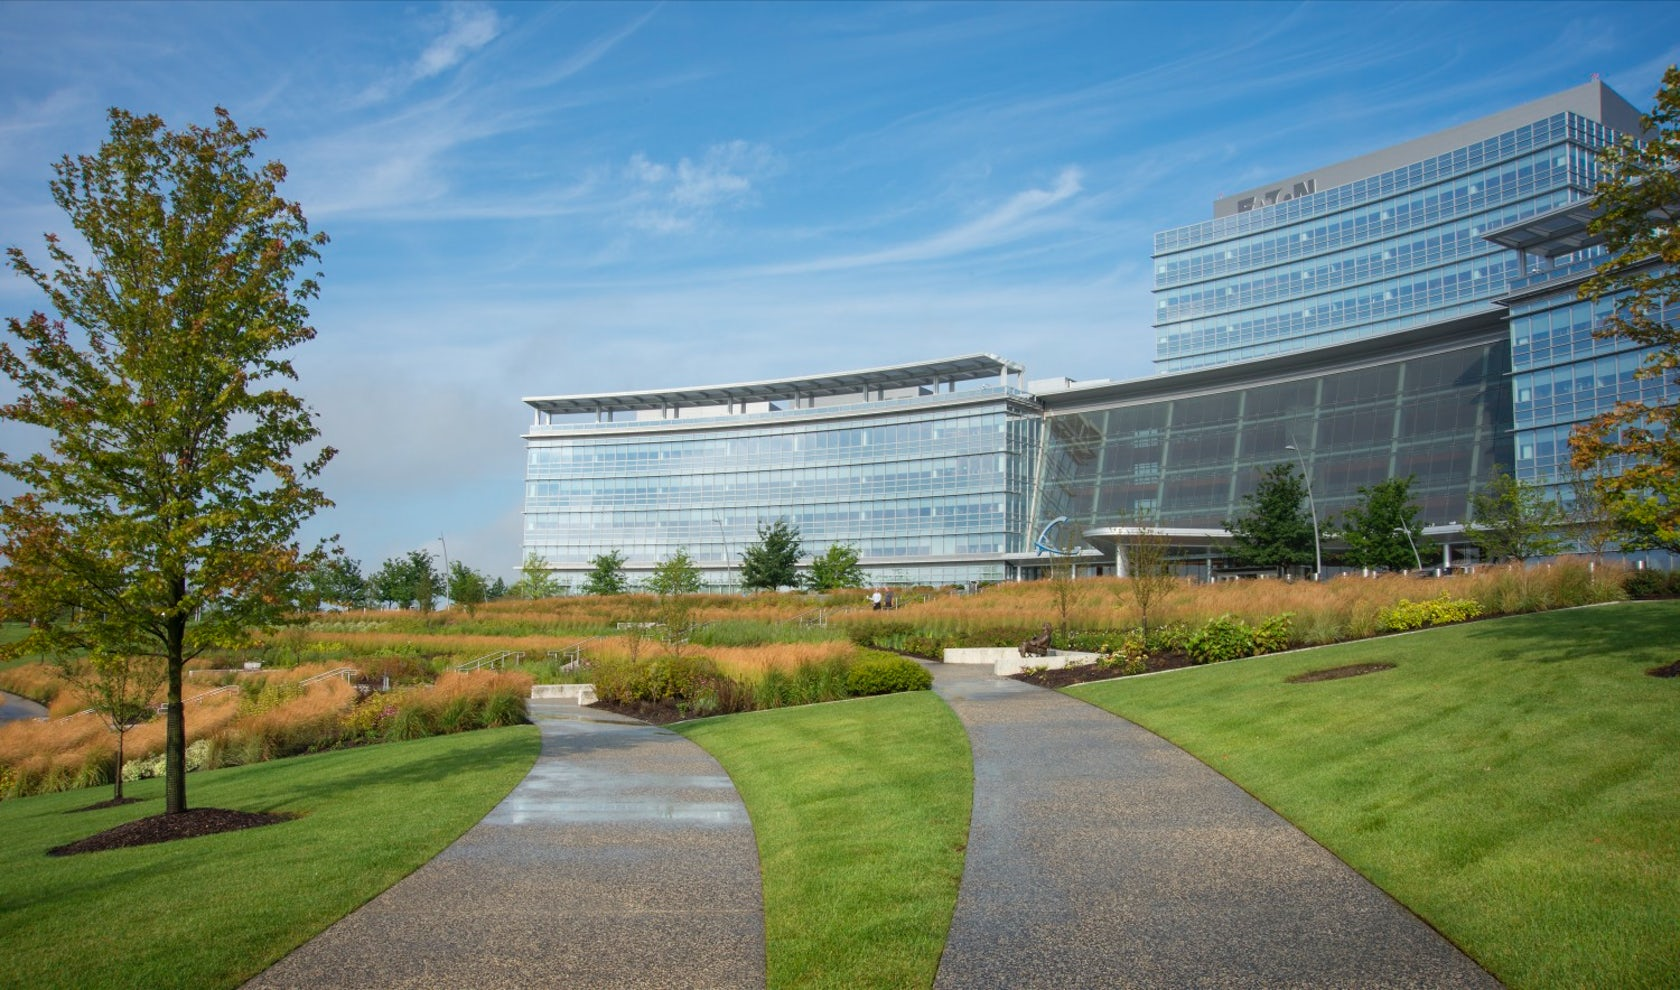 logitech shift its corporate headquarters from switzerland to fremont Business: international trade and comparative decided to shift its corporate headquarters from in fremont, california and switzerland create.